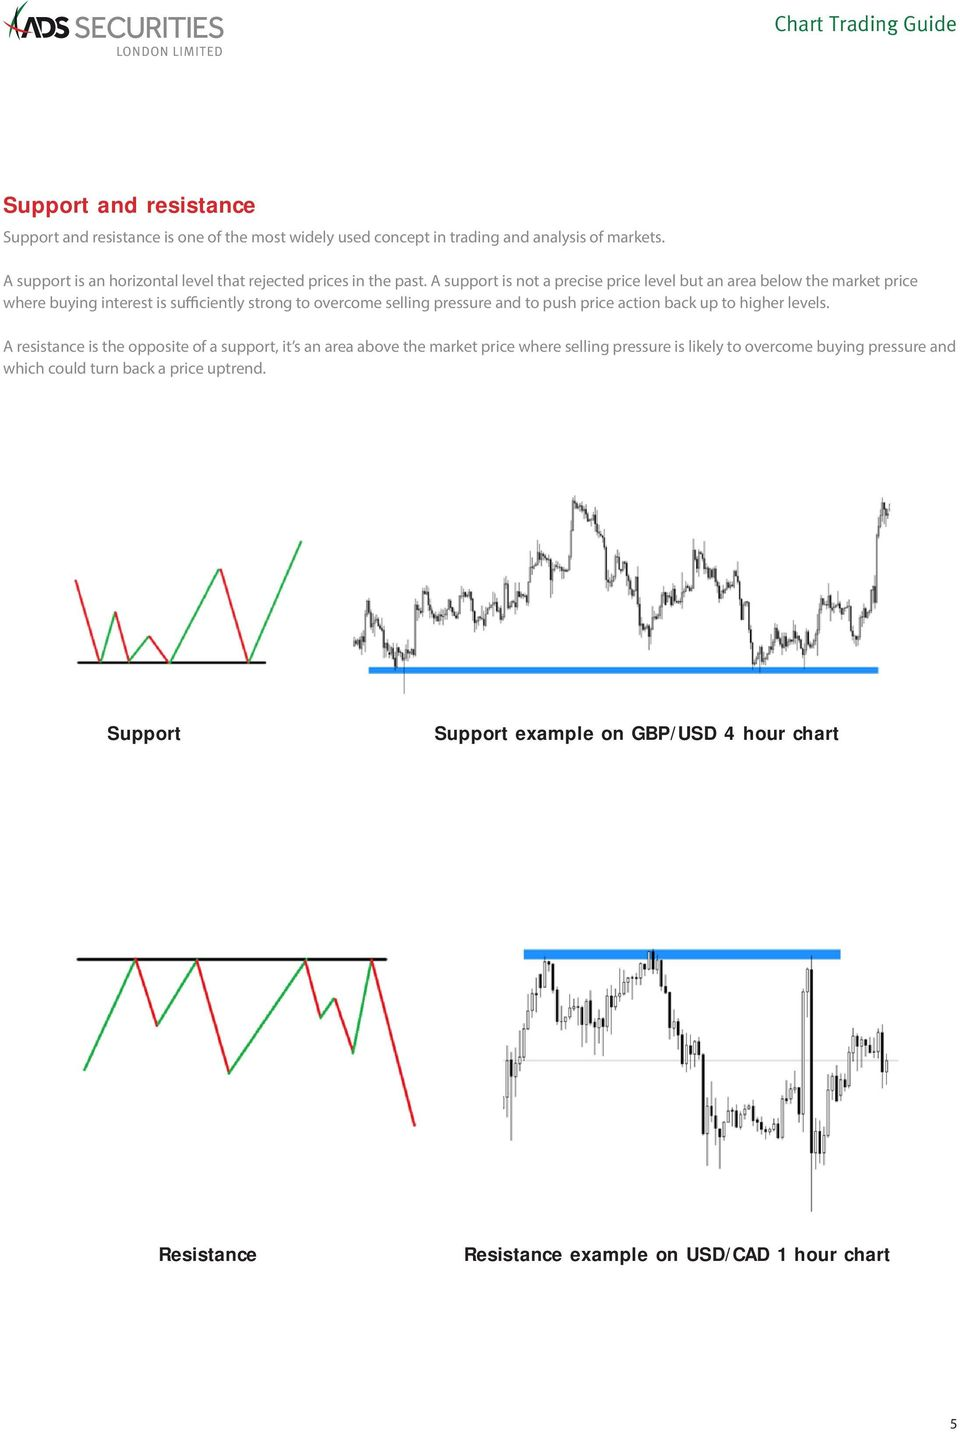 A support is not a precise price level but an area below the market price where buying interest is sufficiently strong to overcome selling pressure and to push price